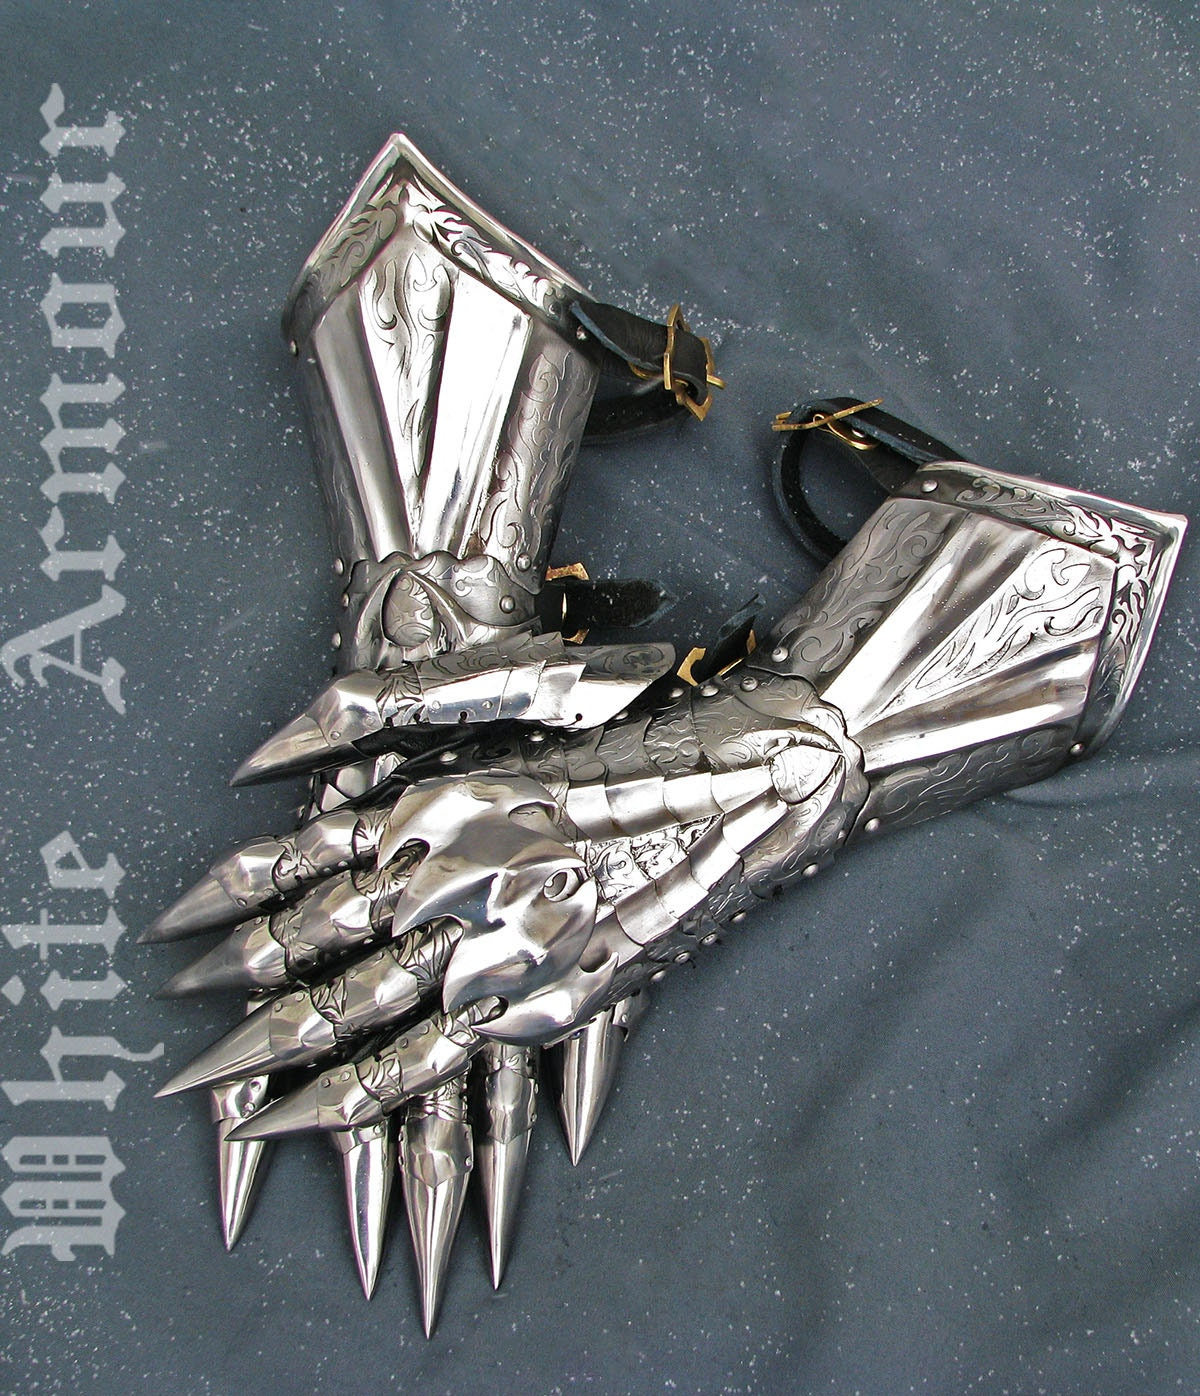 Sauron Gauntlet to Conquer the Middle-Earth